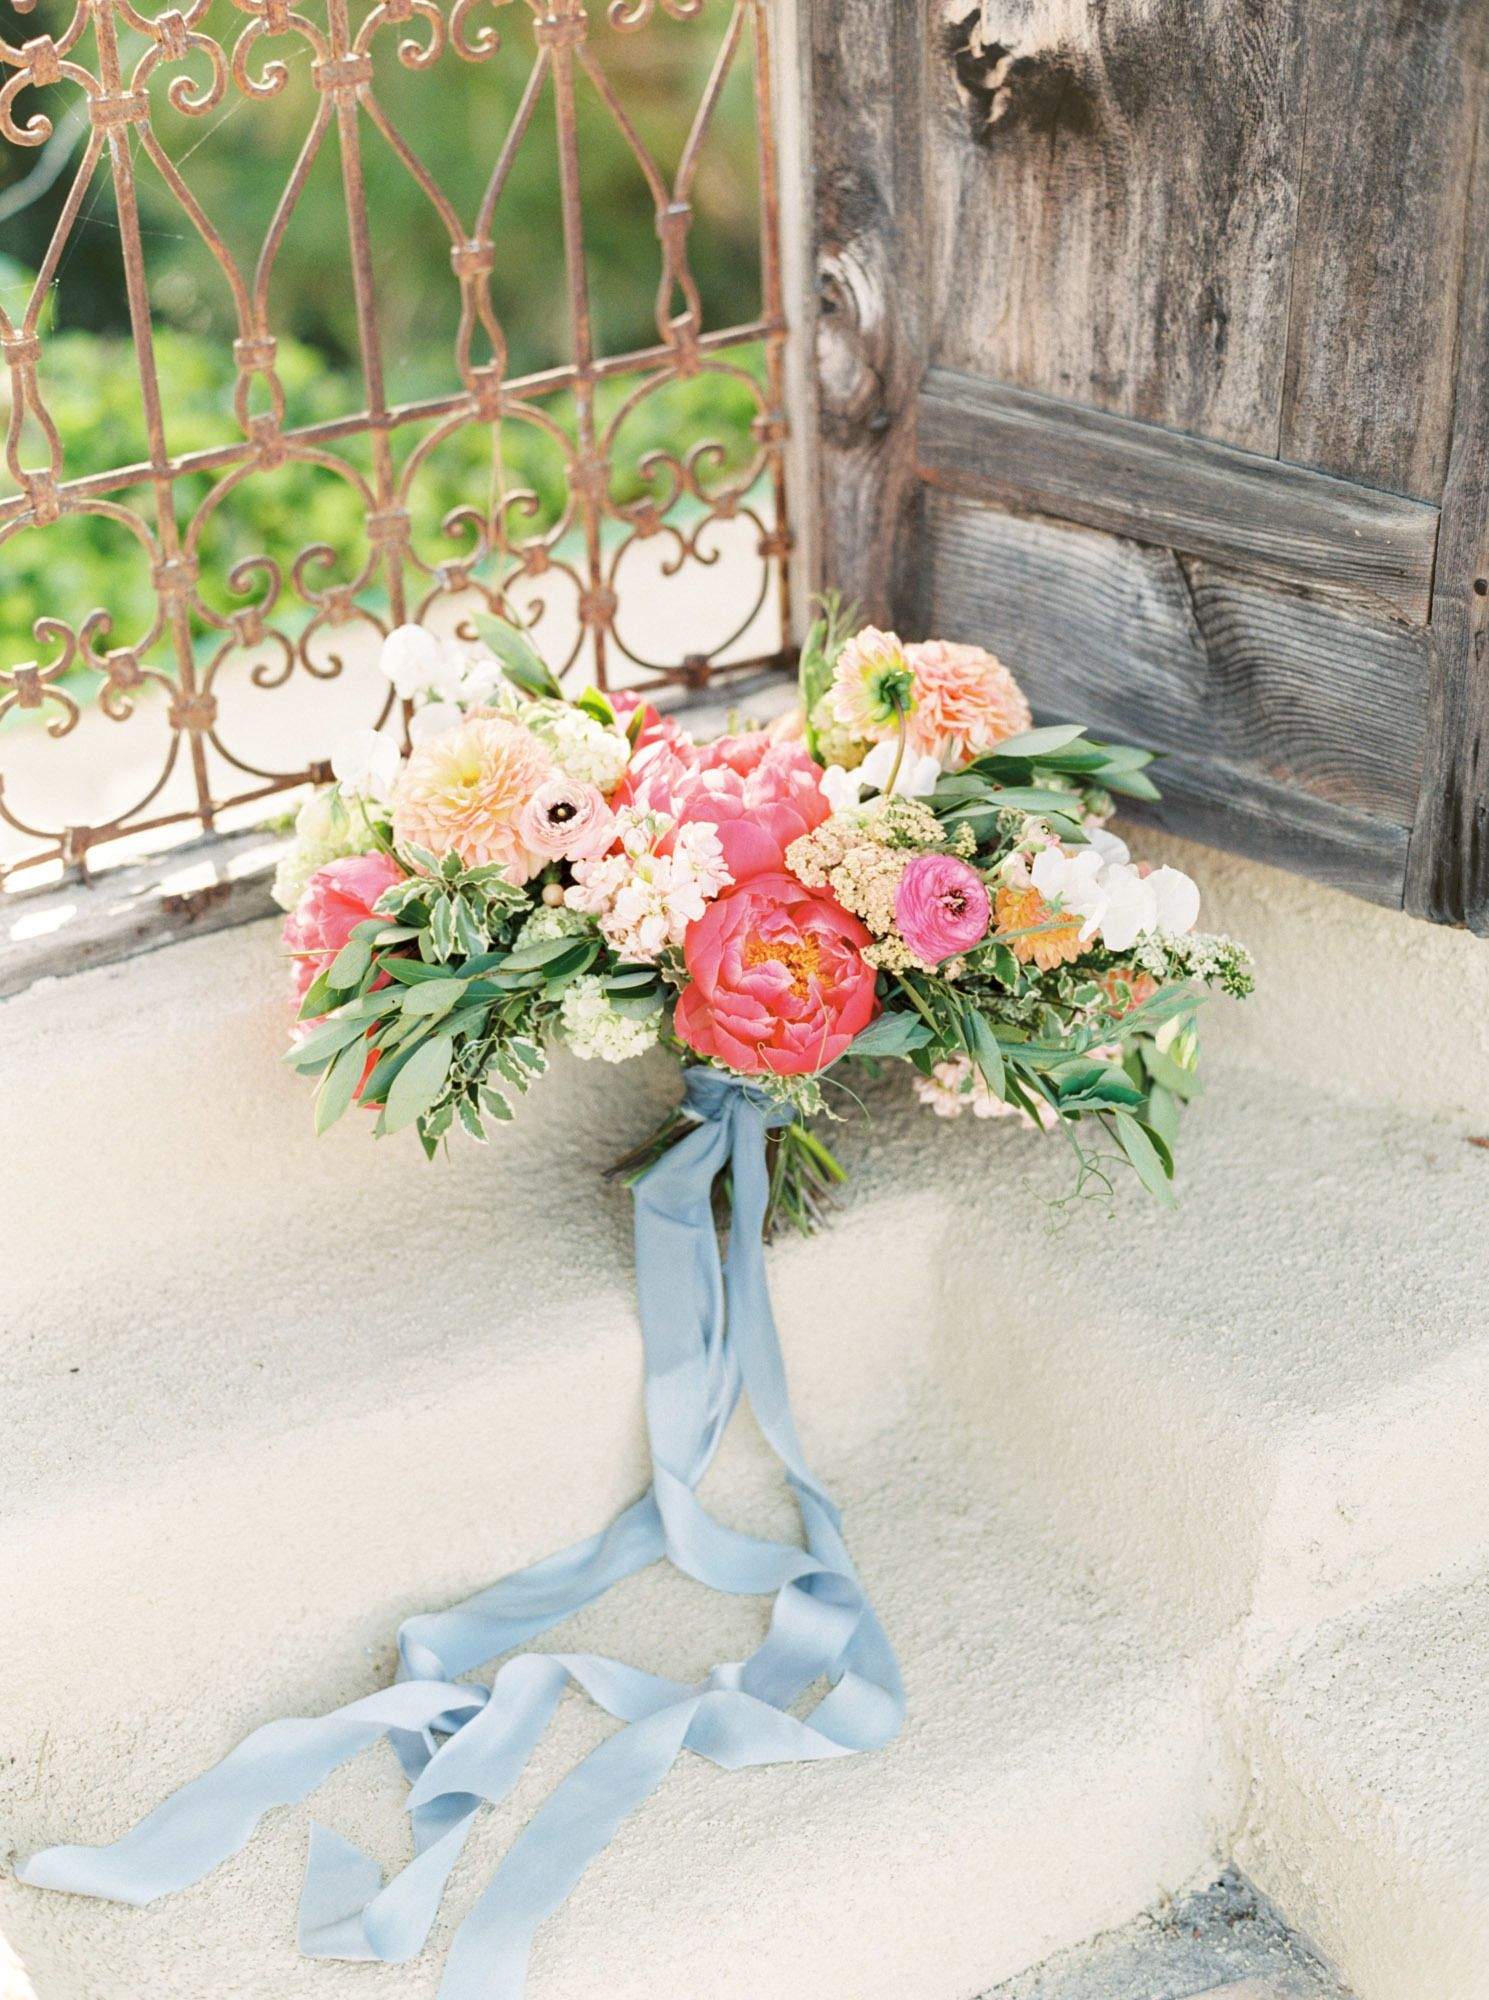 Add A Splash of Color + Elegance to Your Ranch Wedding